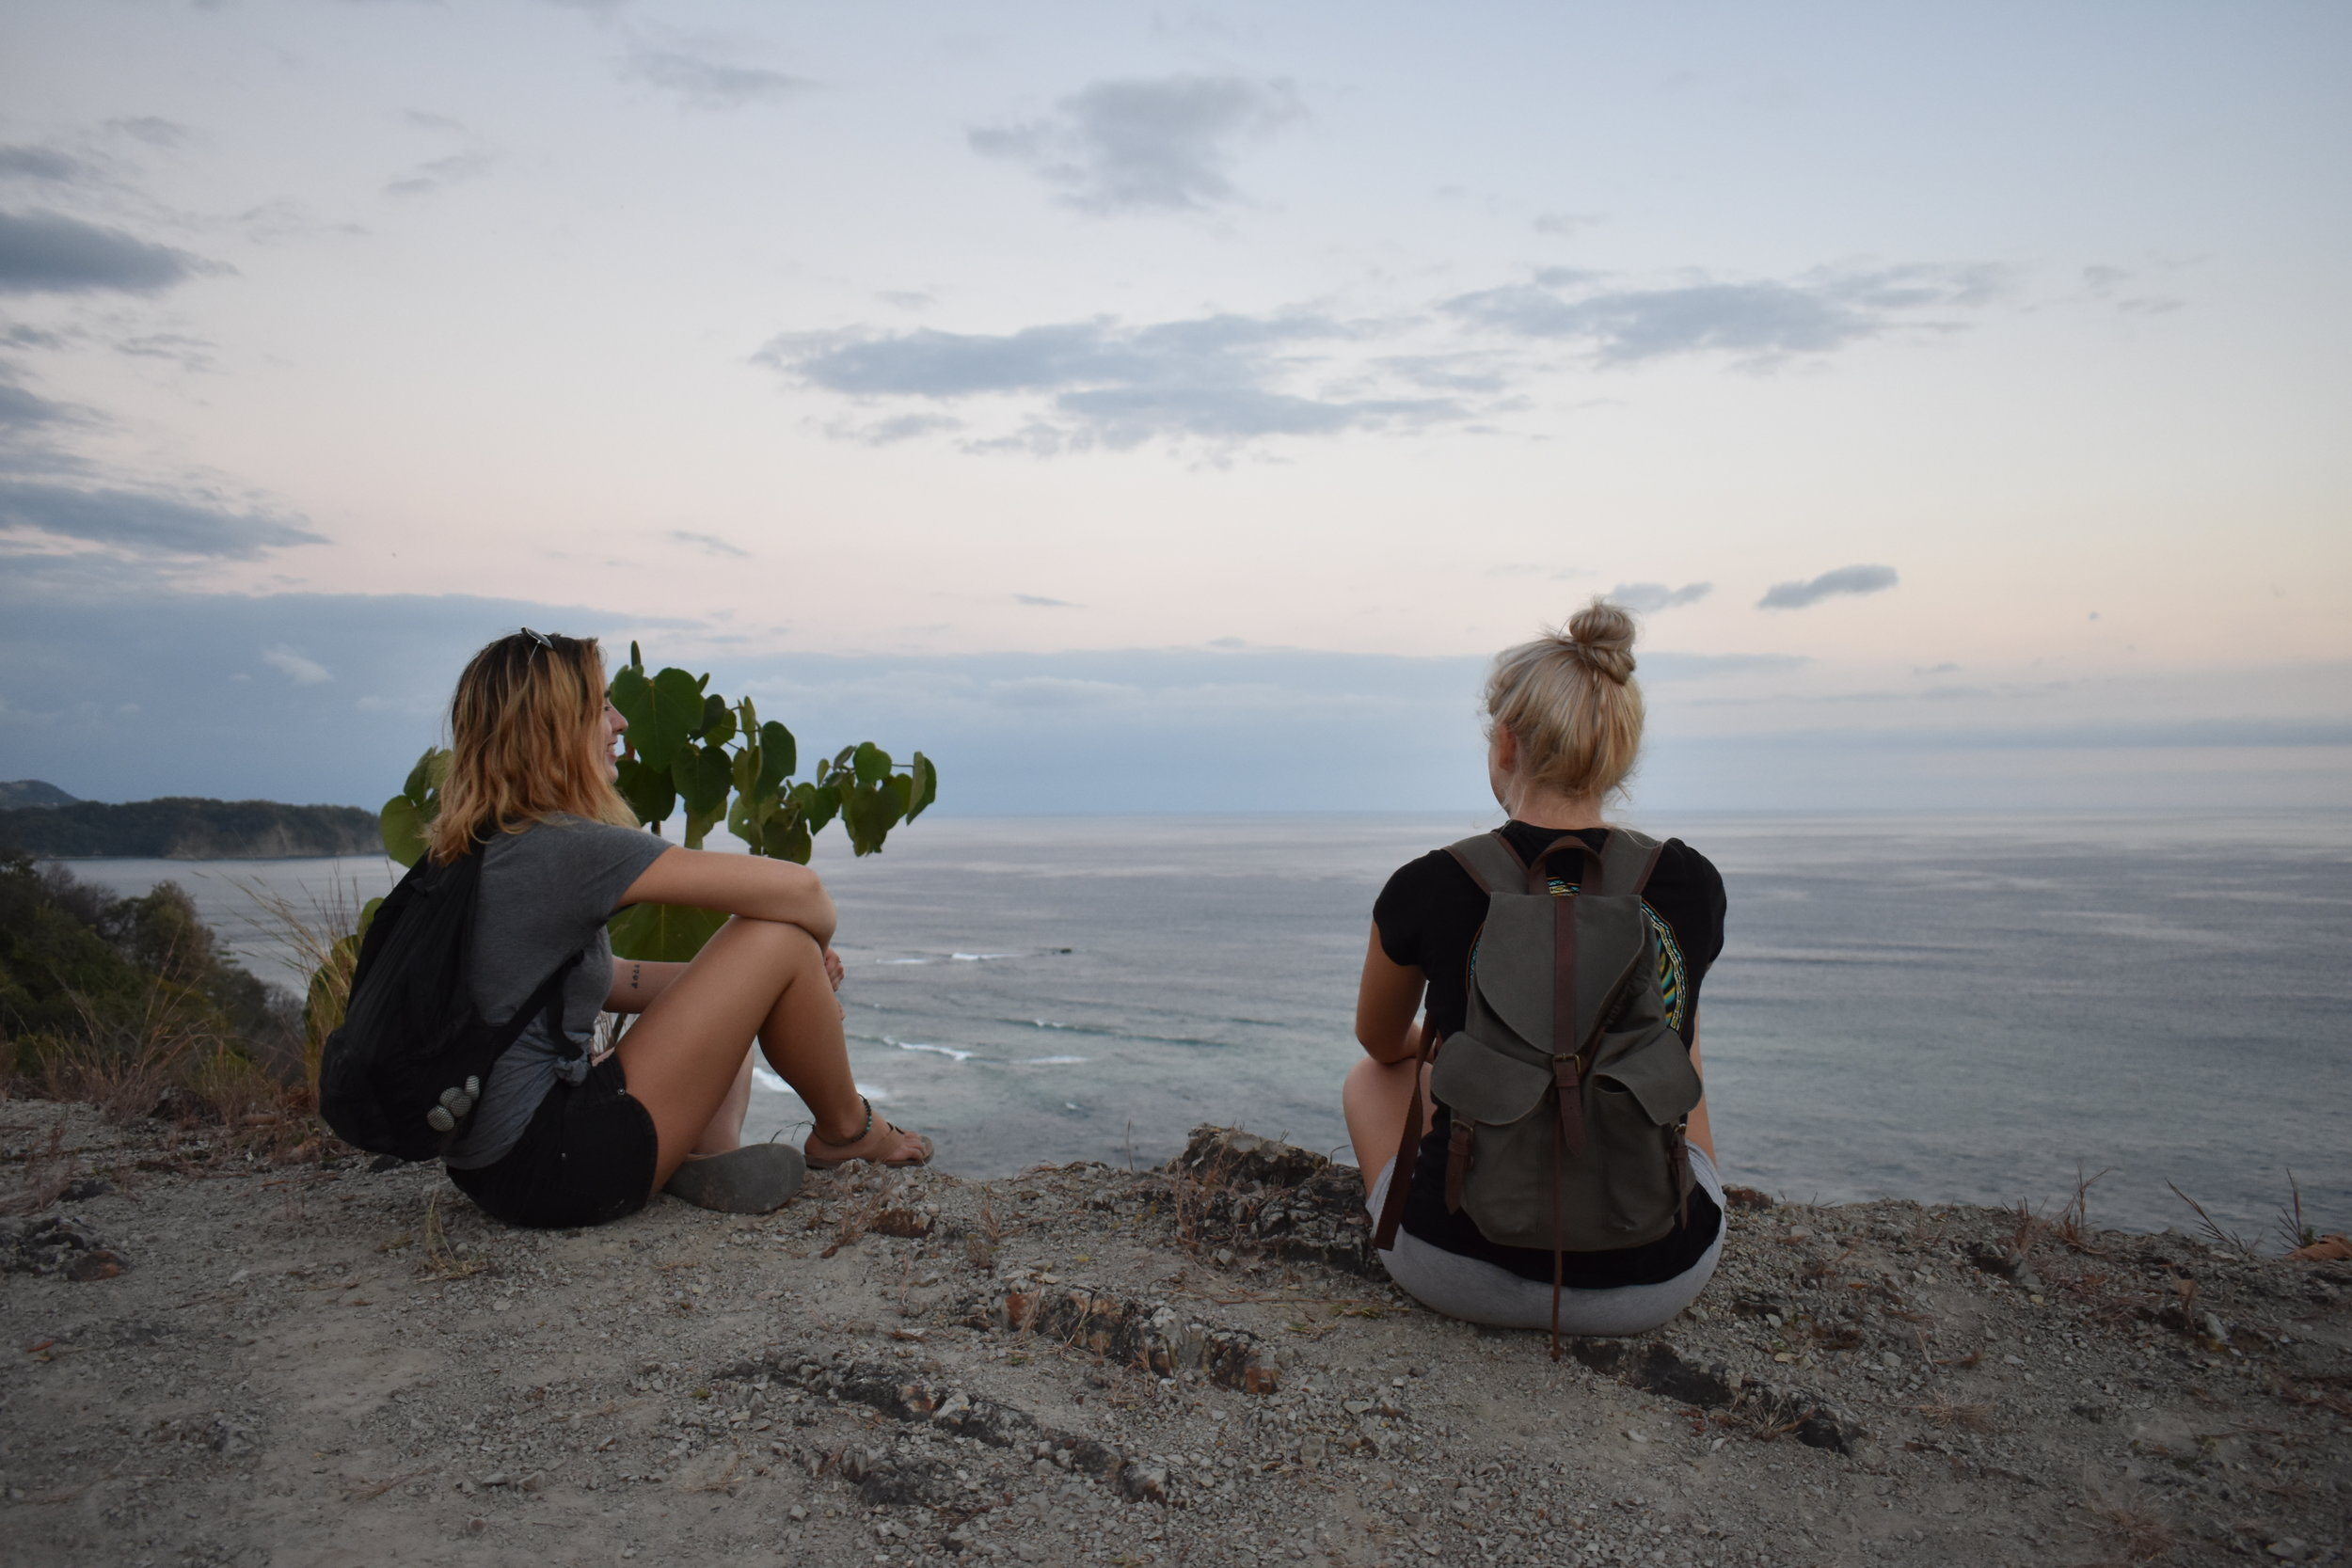 Hollie Moser (left) and Cassie Larson (right) enjoying the last sunset